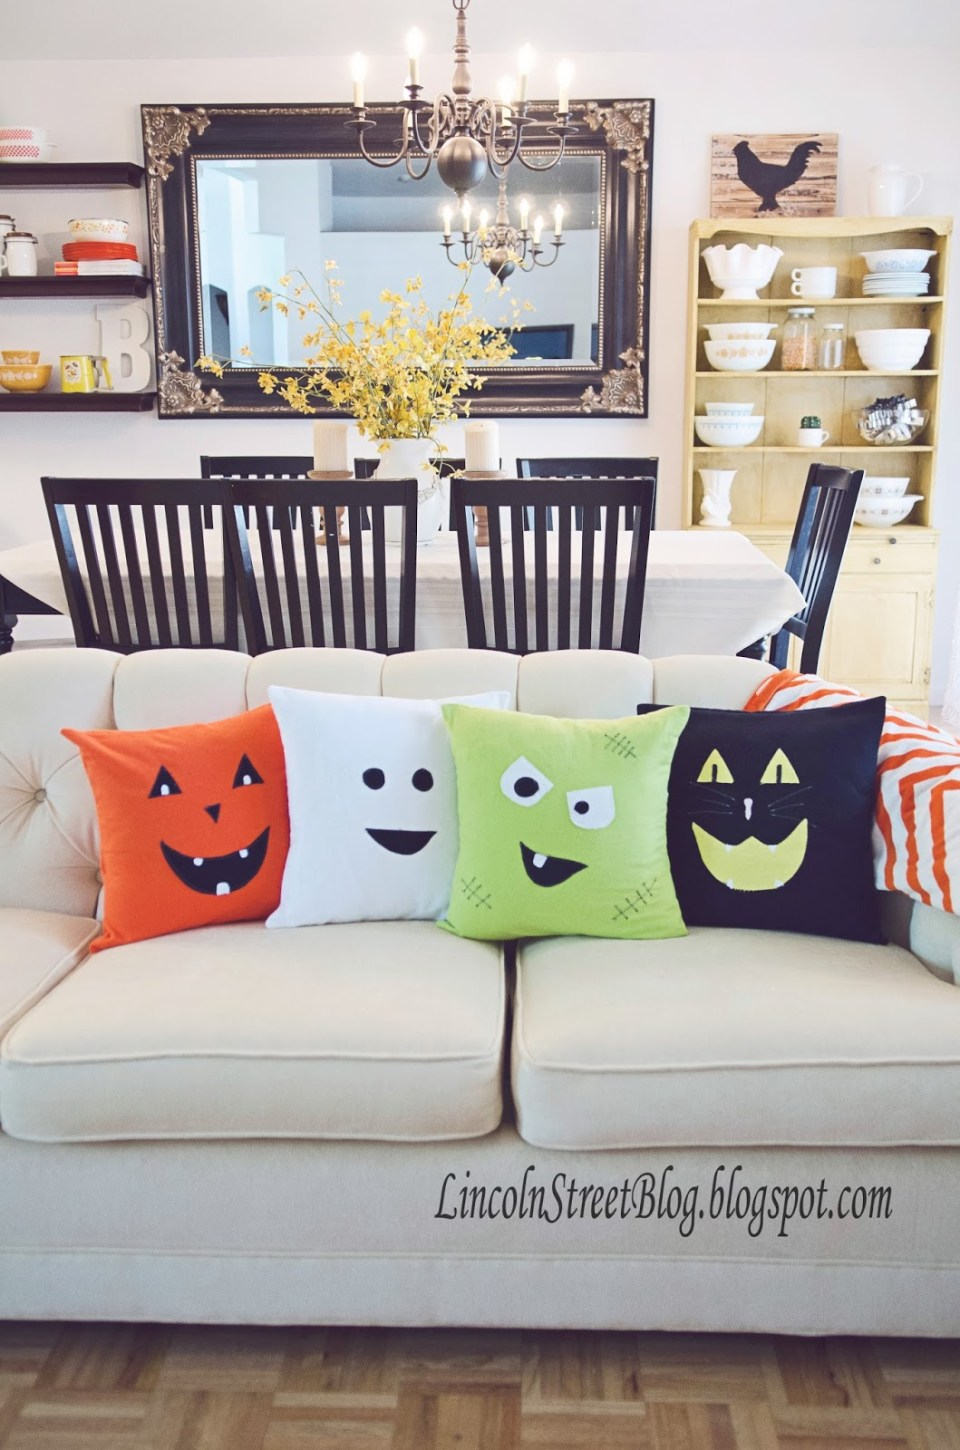 Pillows Offer Comfort, Whimsy | DIY Indoor Halloween Decorating Ideas